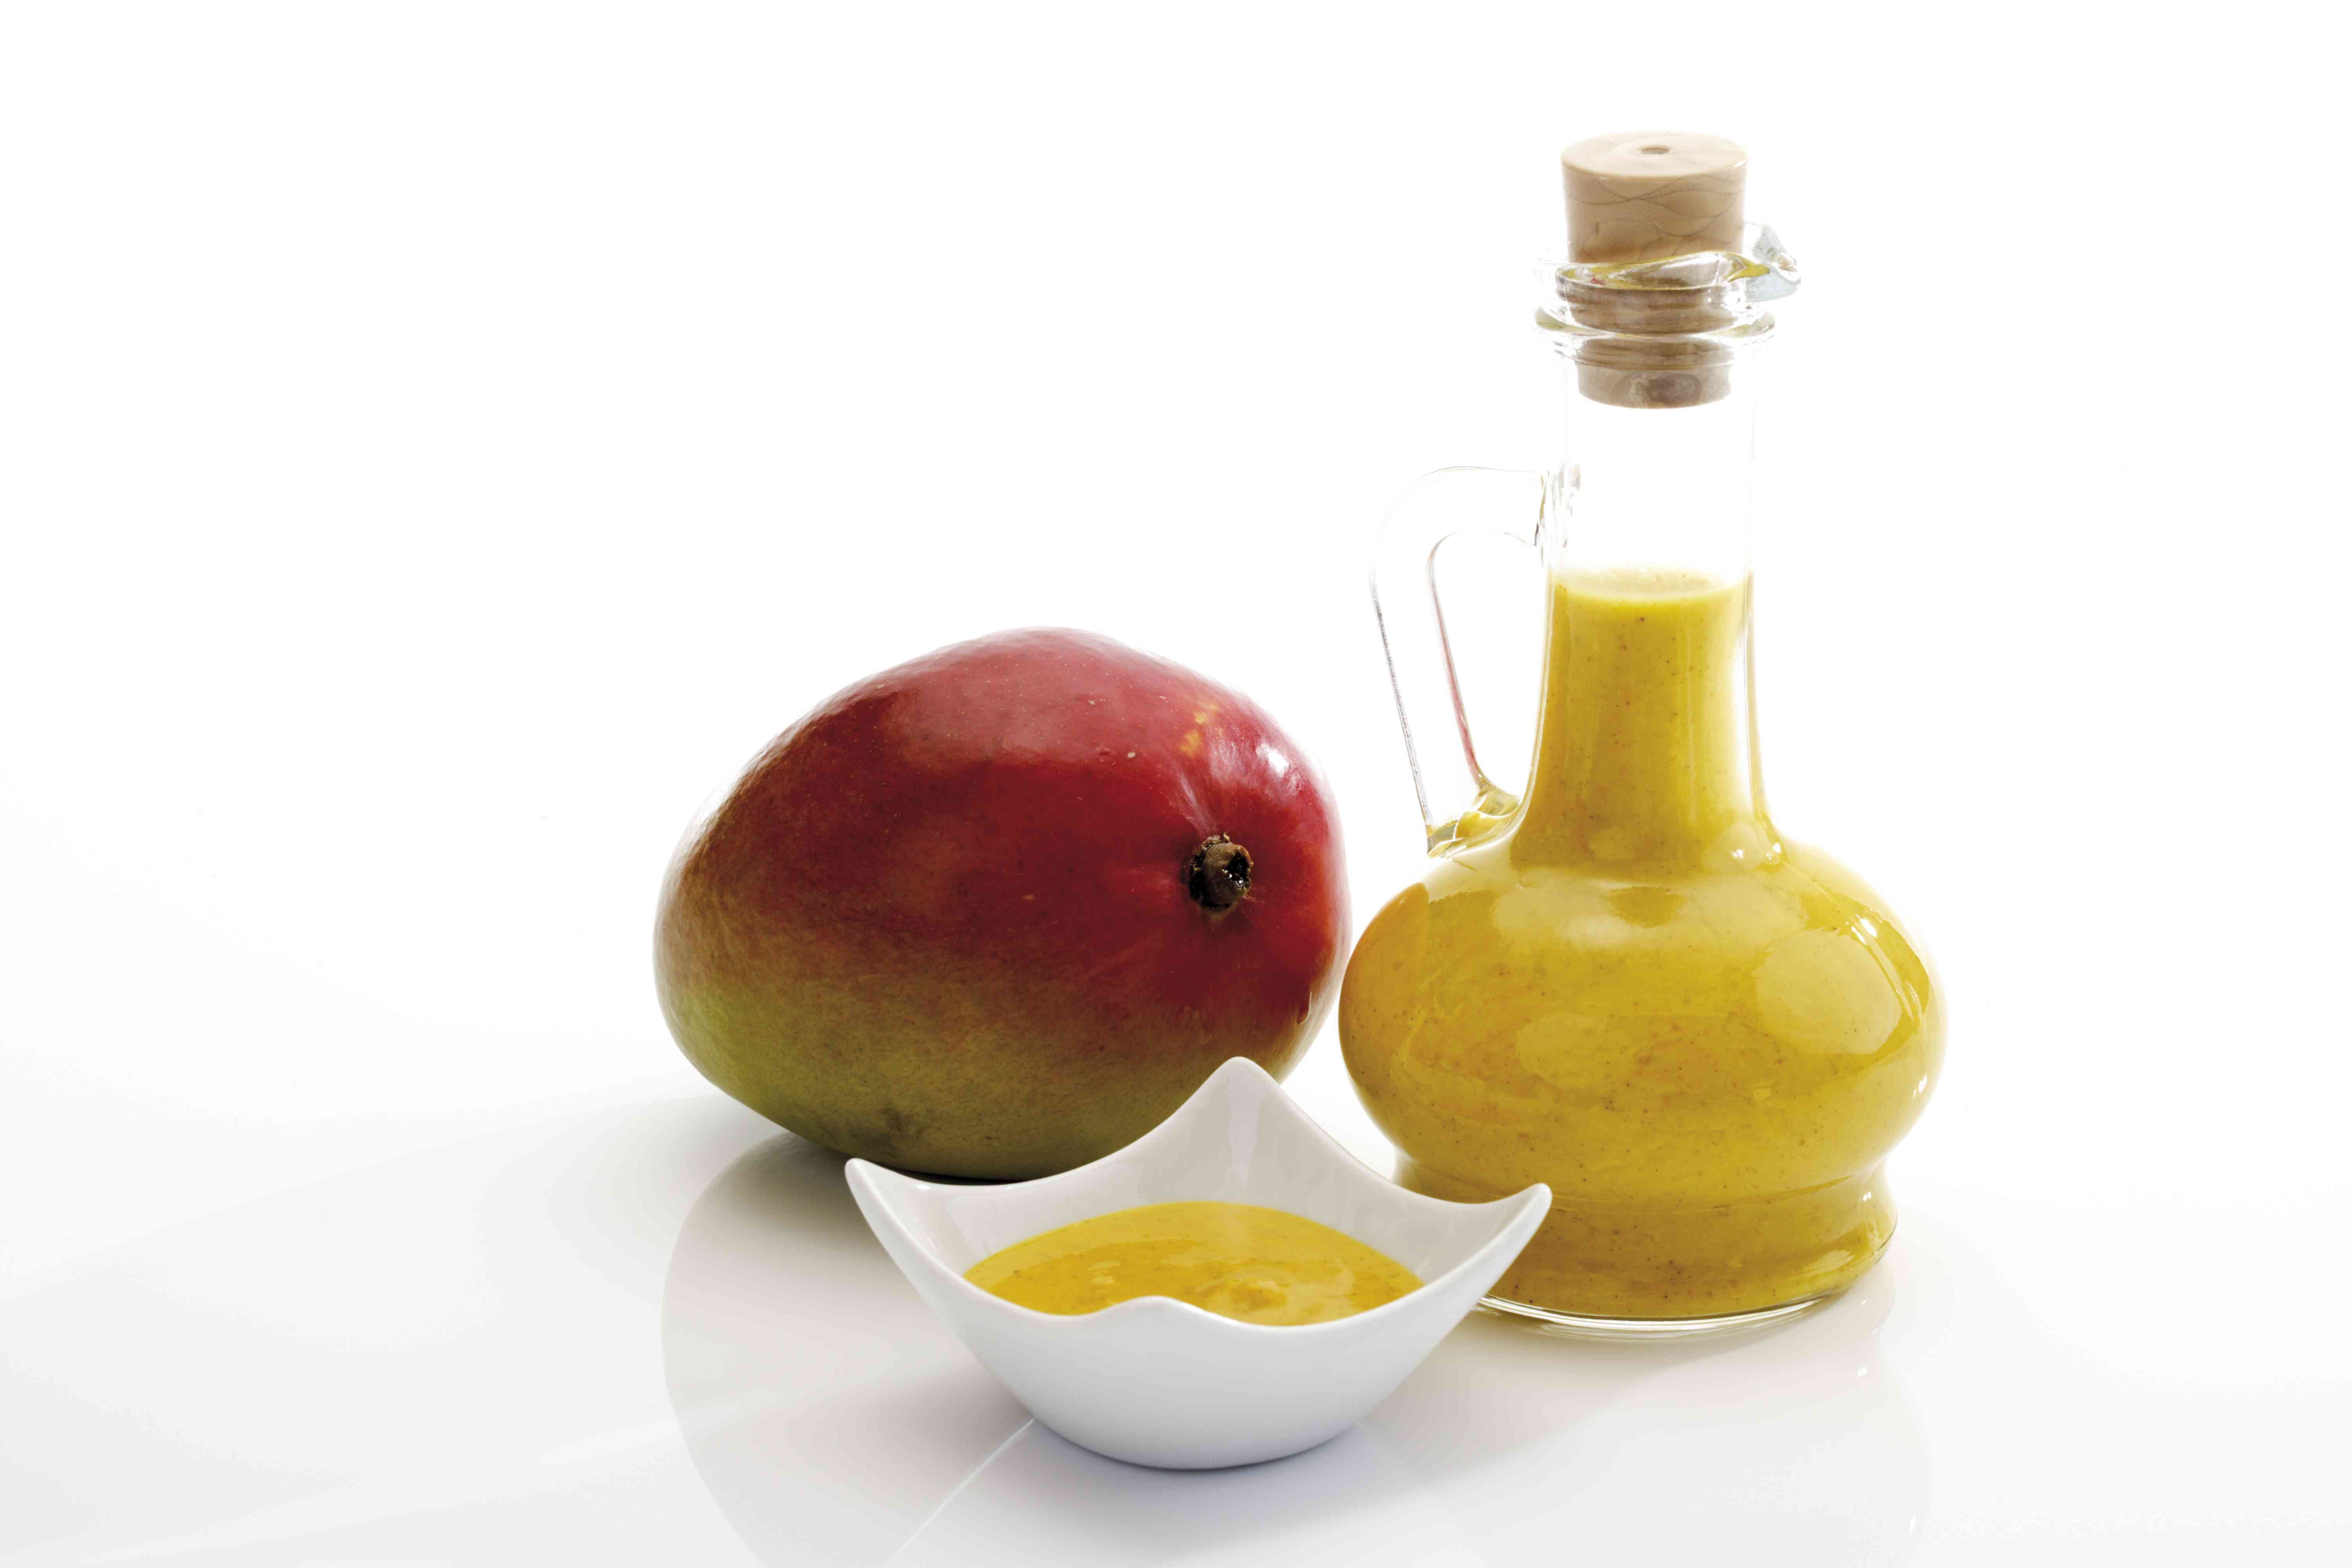 Mango sauce in a bowl and bottle with a fresh mango on a white background.